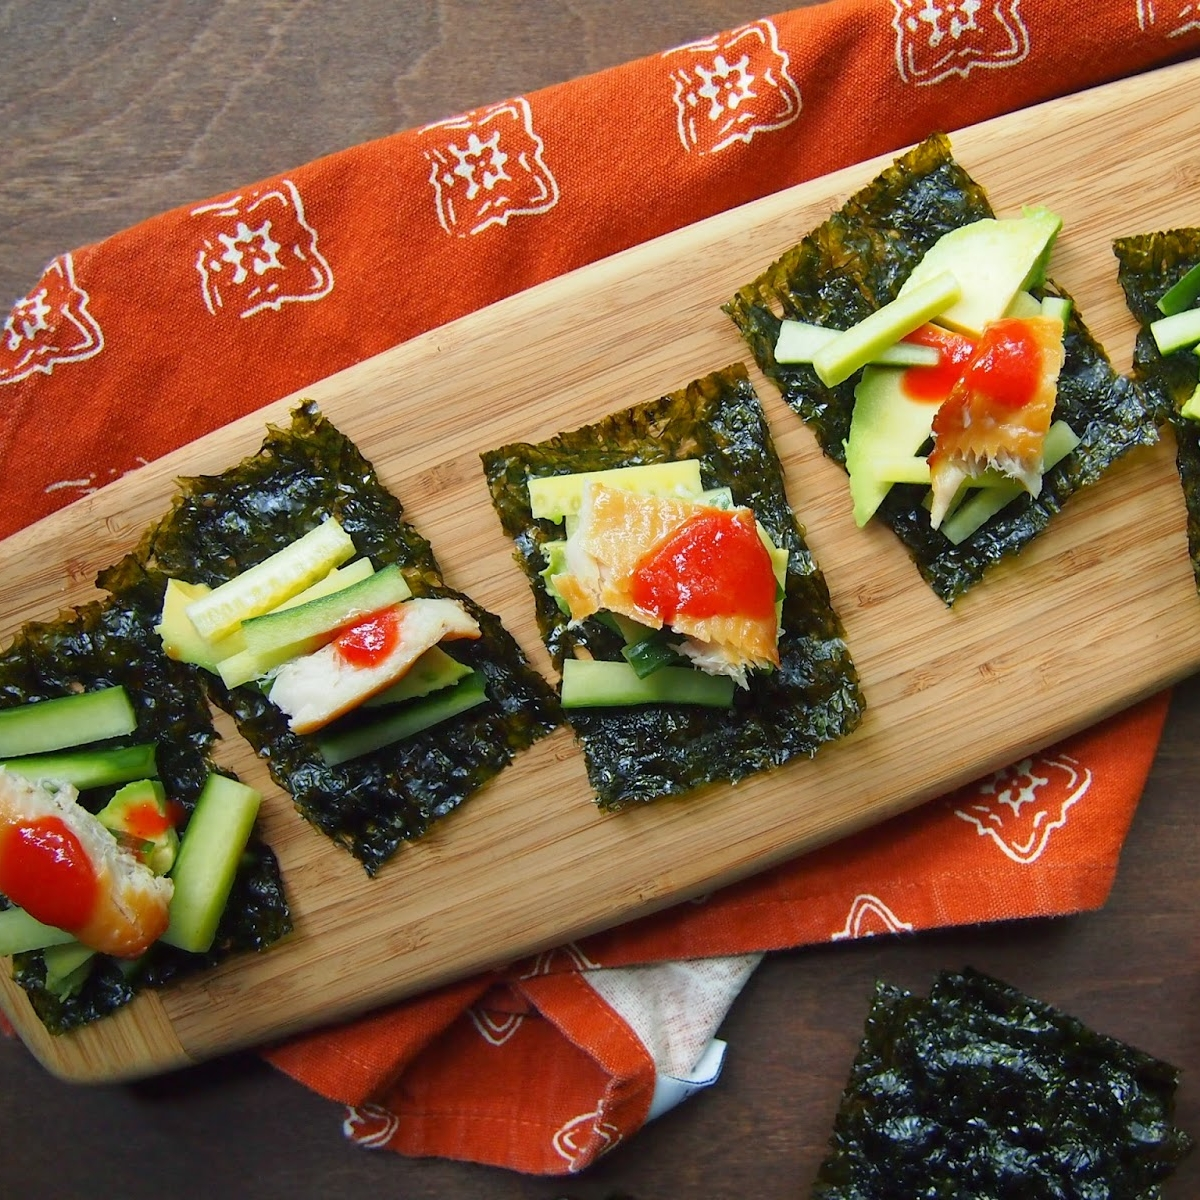 Toasted Nori Snacks with Smoked Trout and Avocado